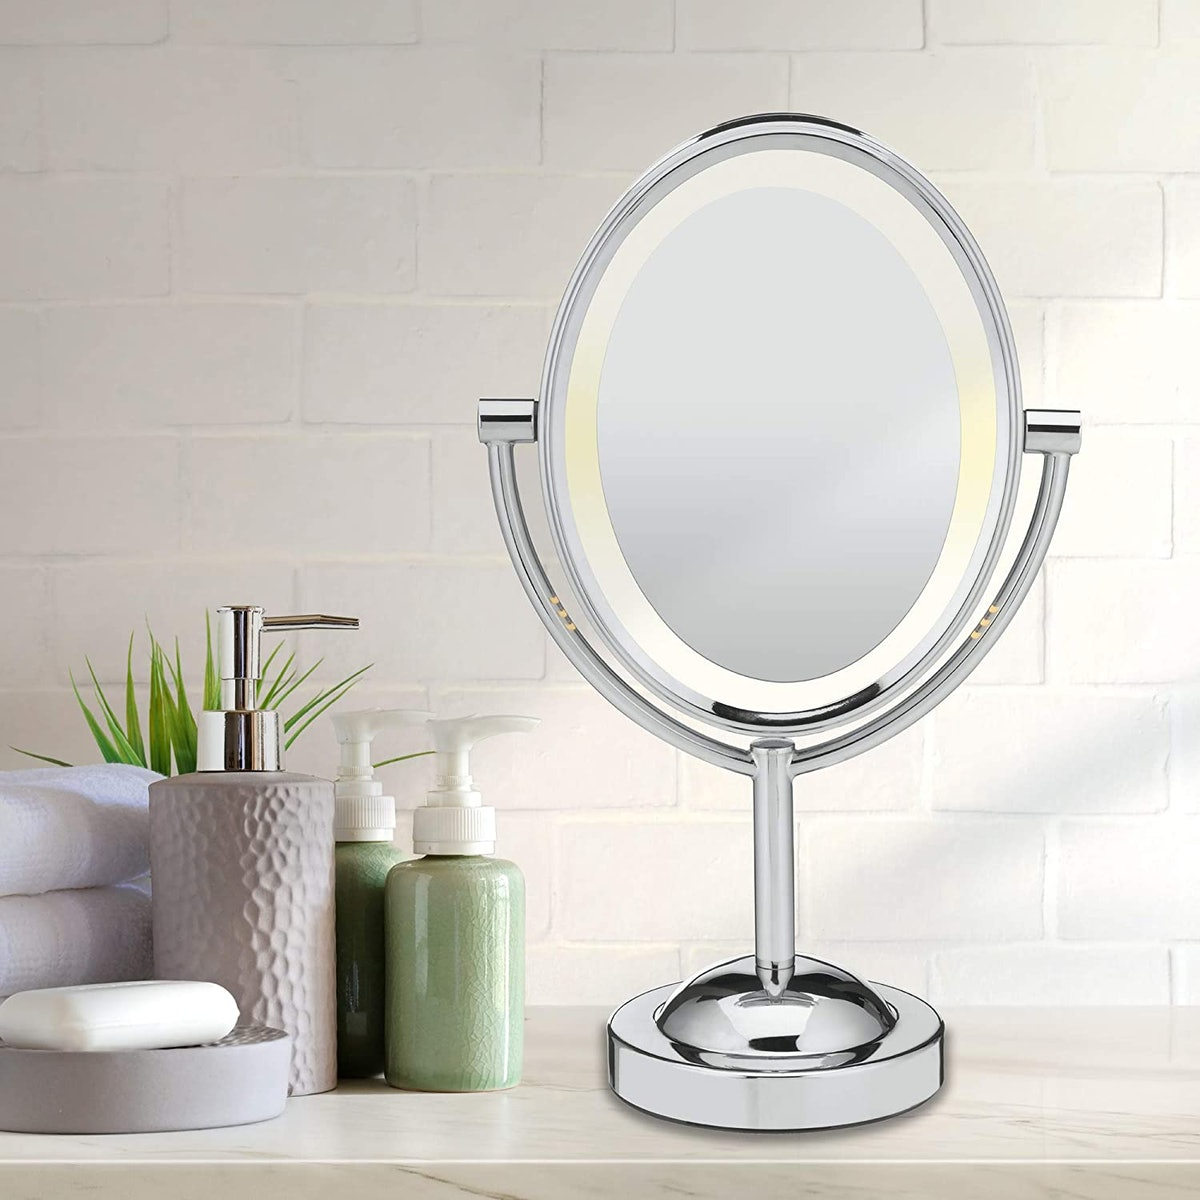 Conair Reflections Double-Sided Lighted Makeup Mirror